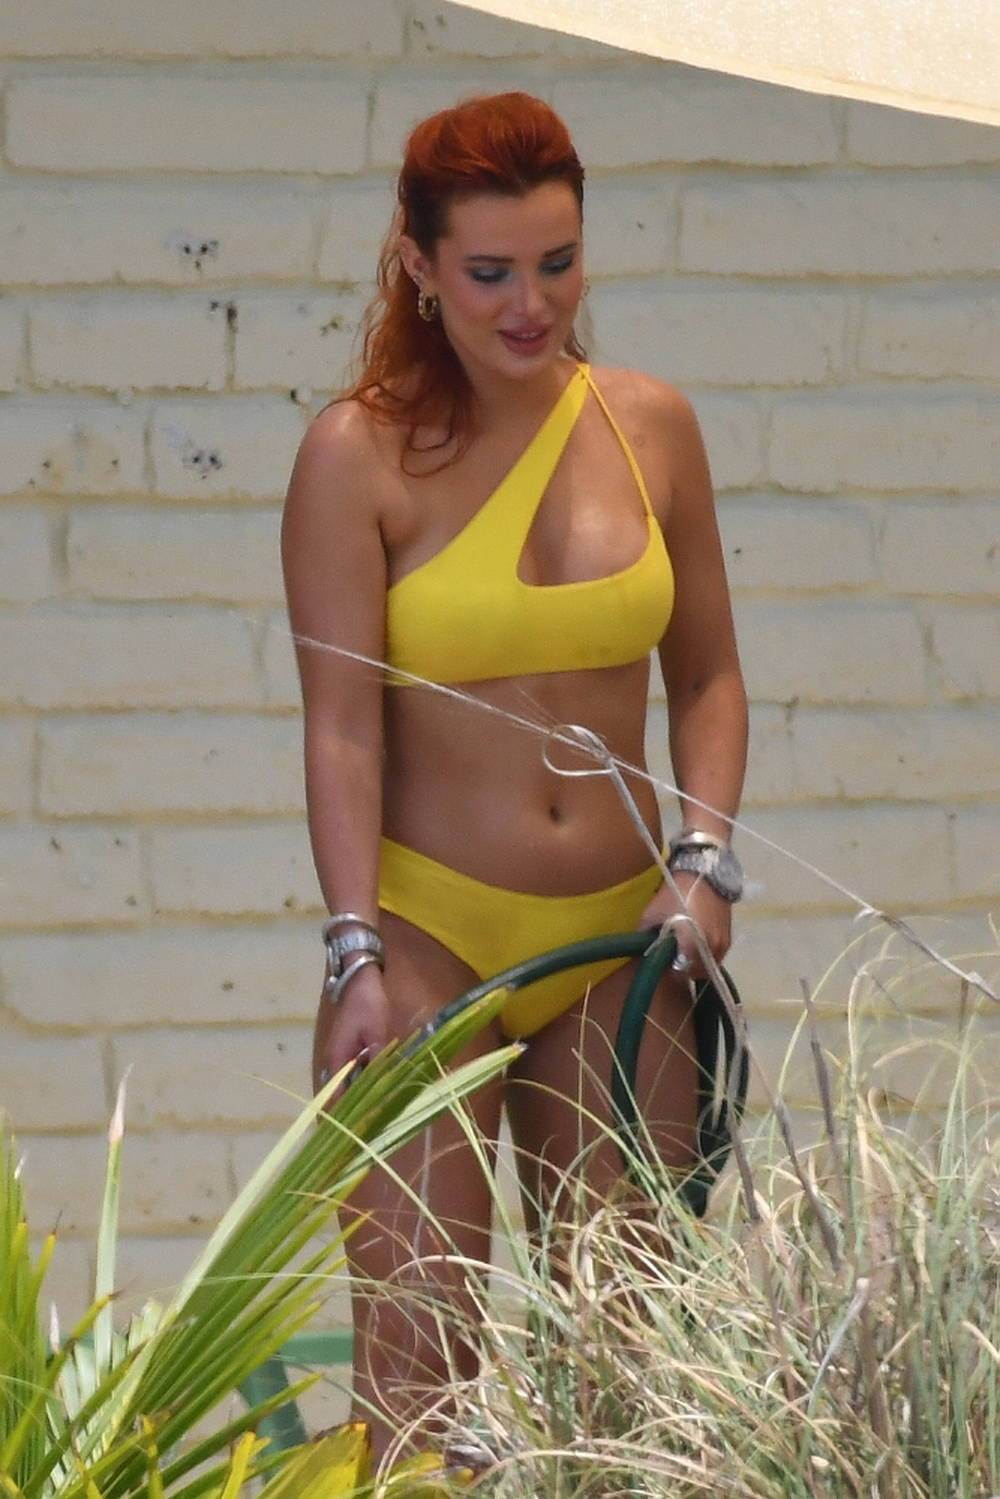 Bella Thorne sizzles in a yellow bikini while posing with a garden hose for a photoshoot in Miami, Florida